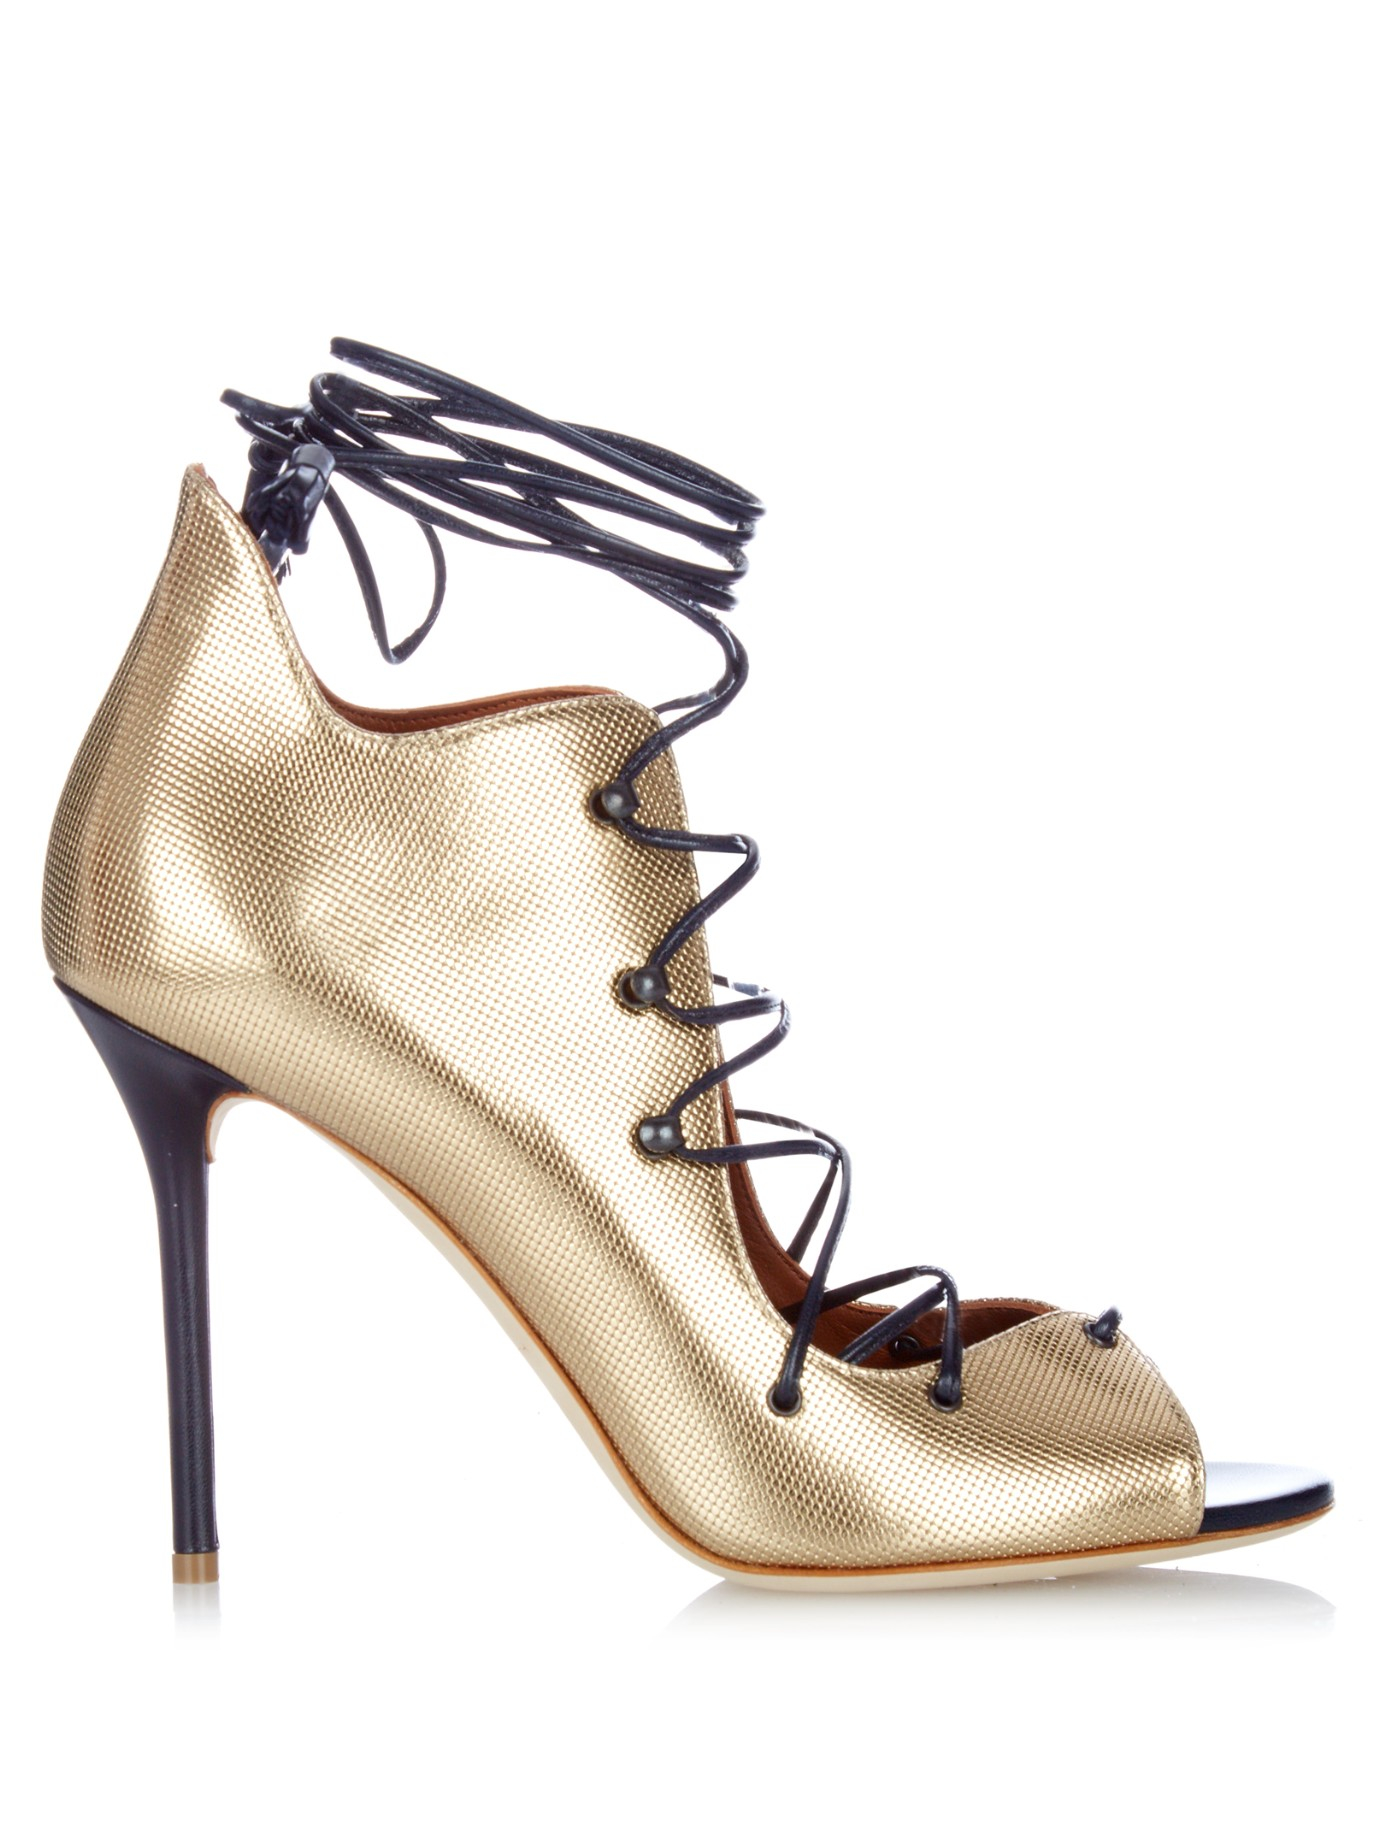 c912f8353c3 Malone Souliers Savannah Lace-up Leather Sandals in Metallic - Lyst